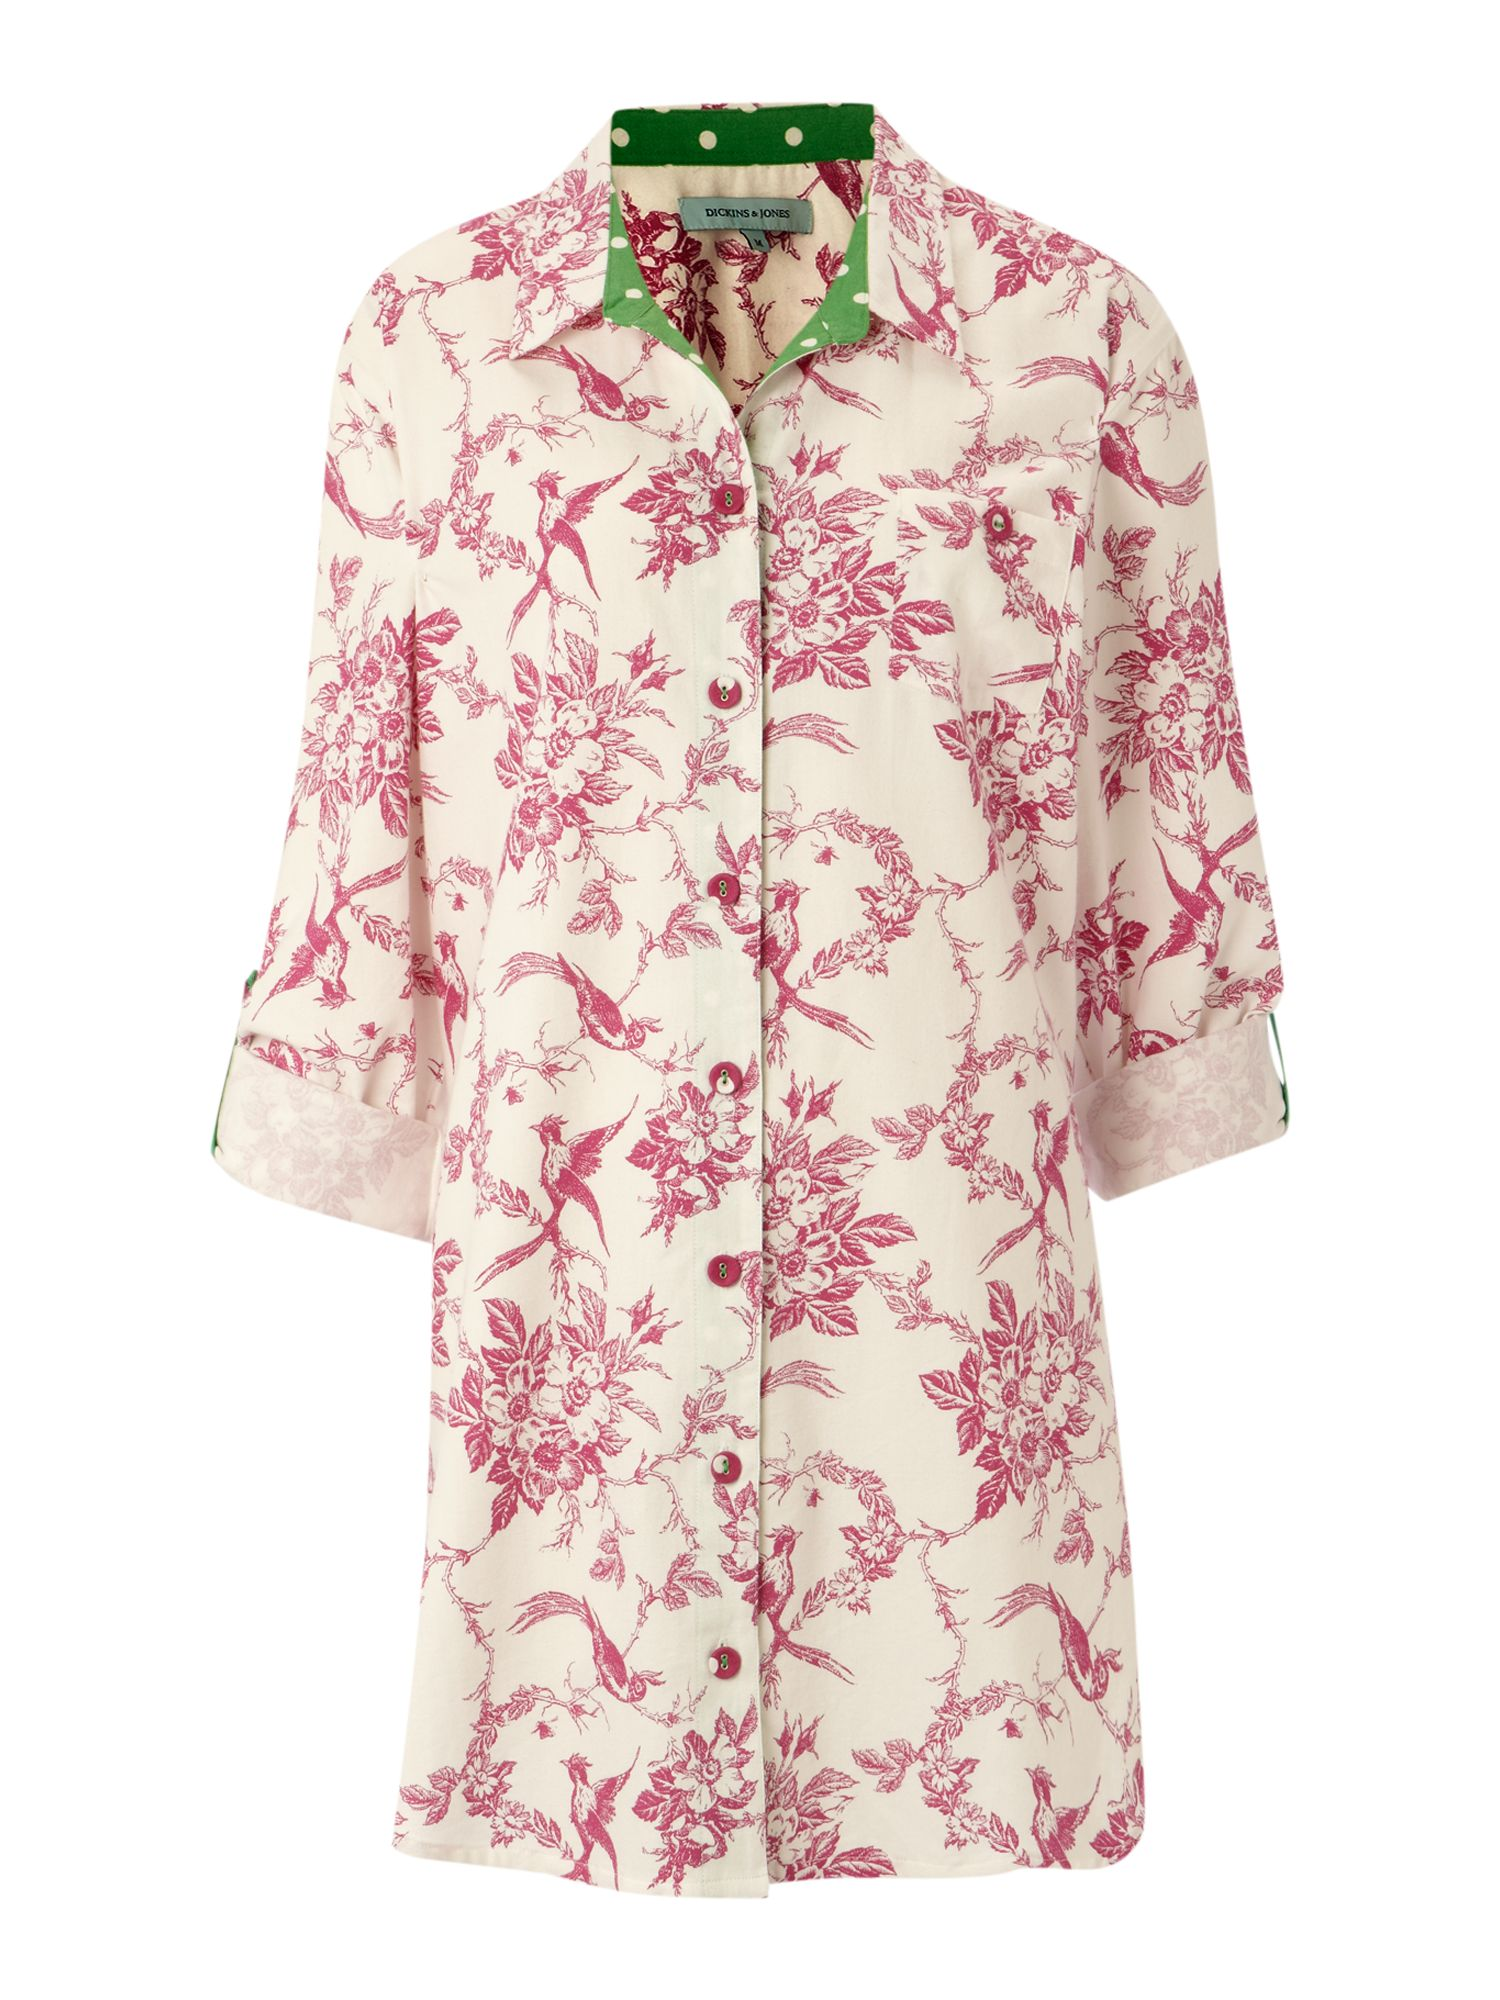 Women's Dickins & Jones Vintage bird print nightshirt, Cream